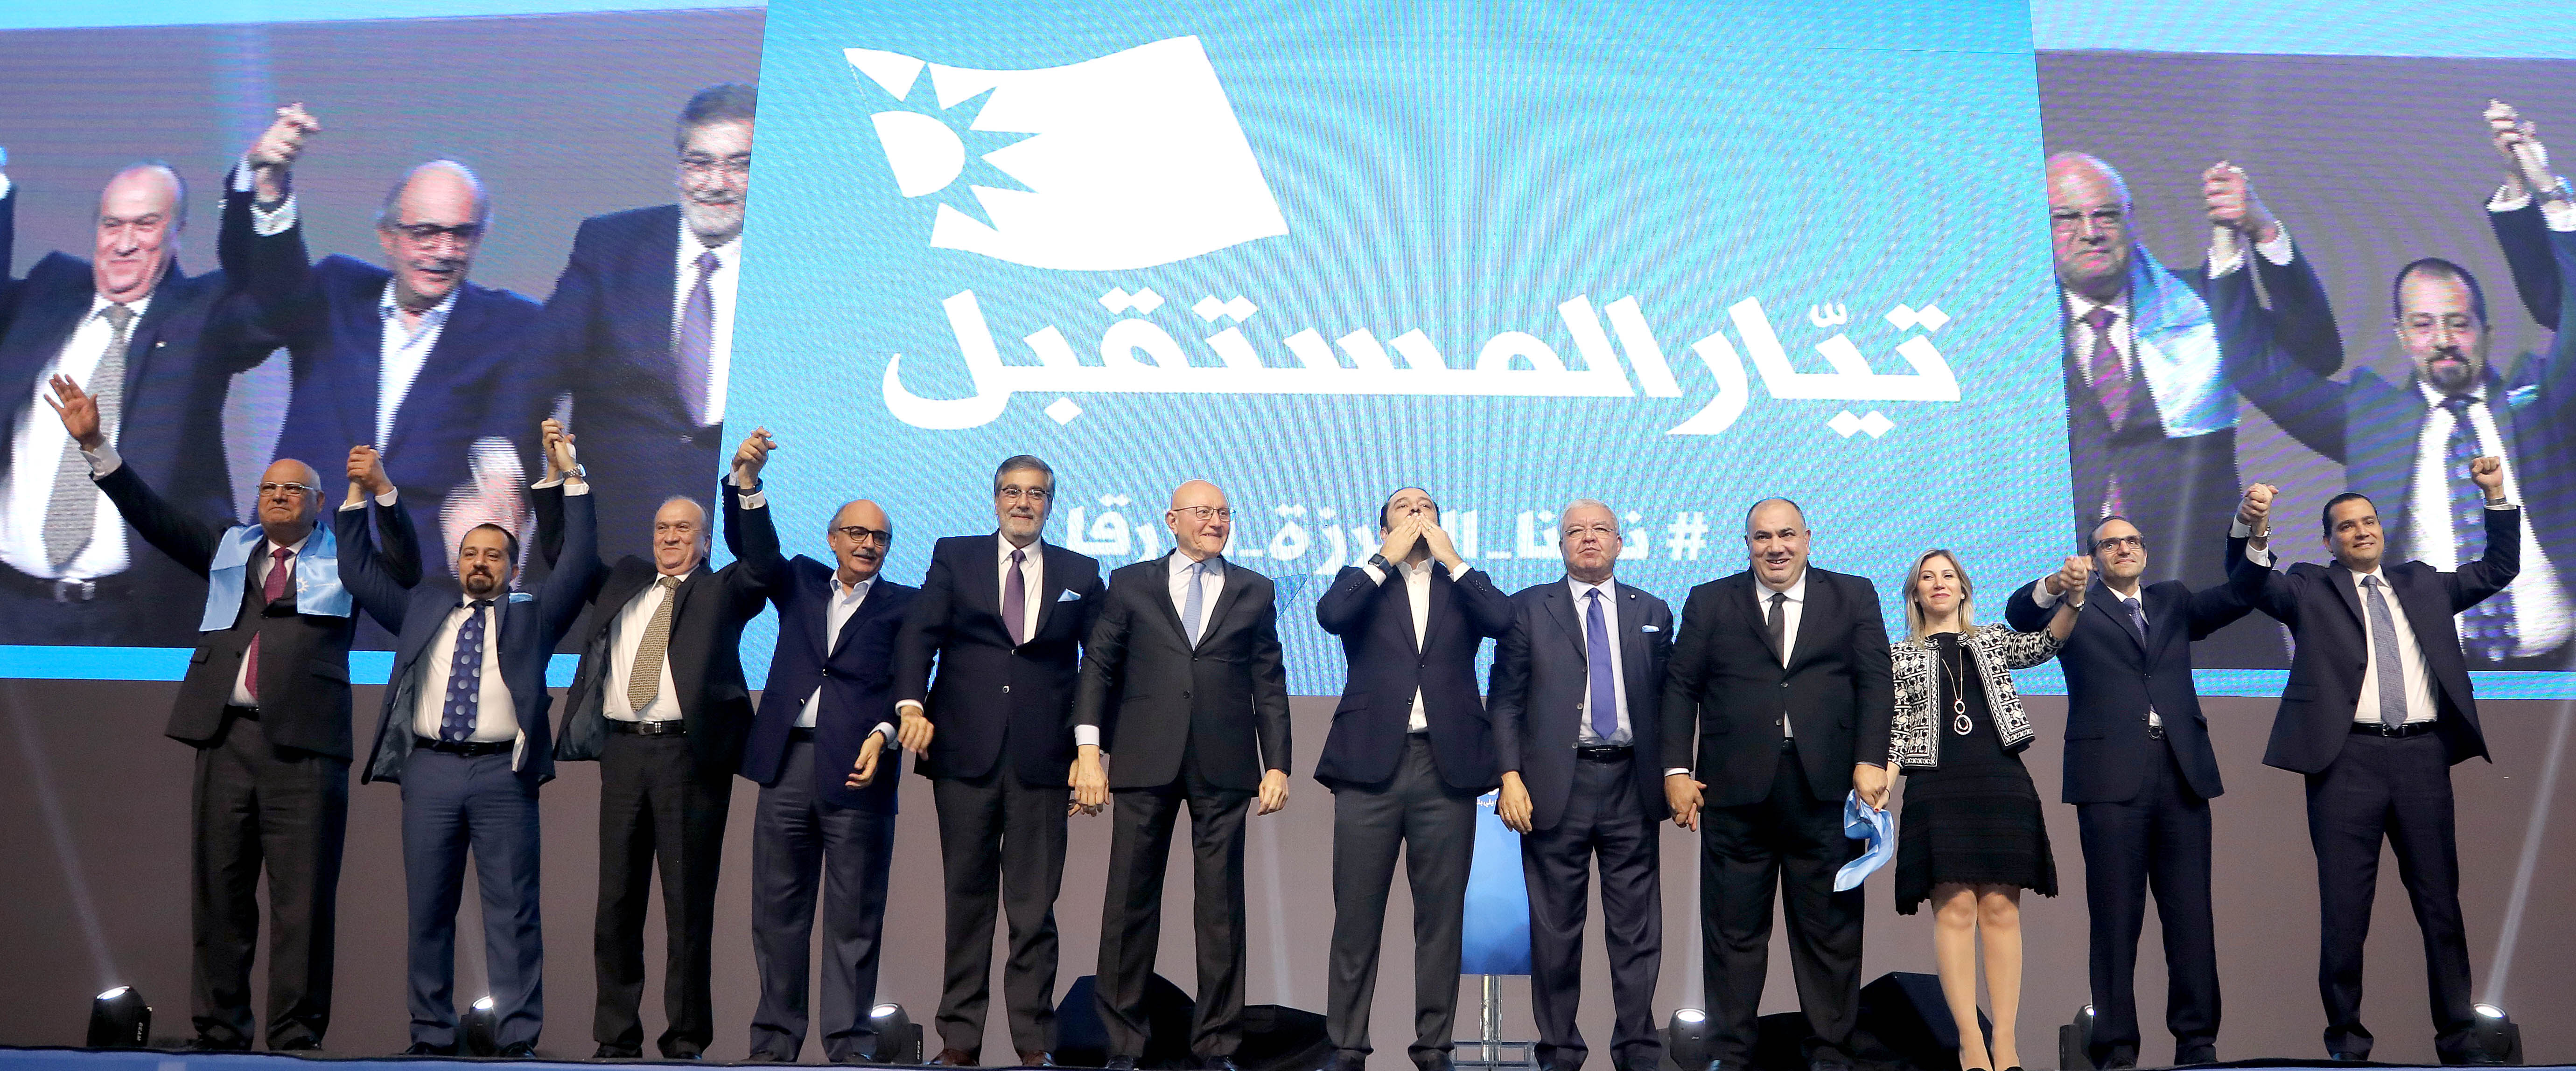 Festival for Pr Minister Saad Hariri for Beirut at Biel